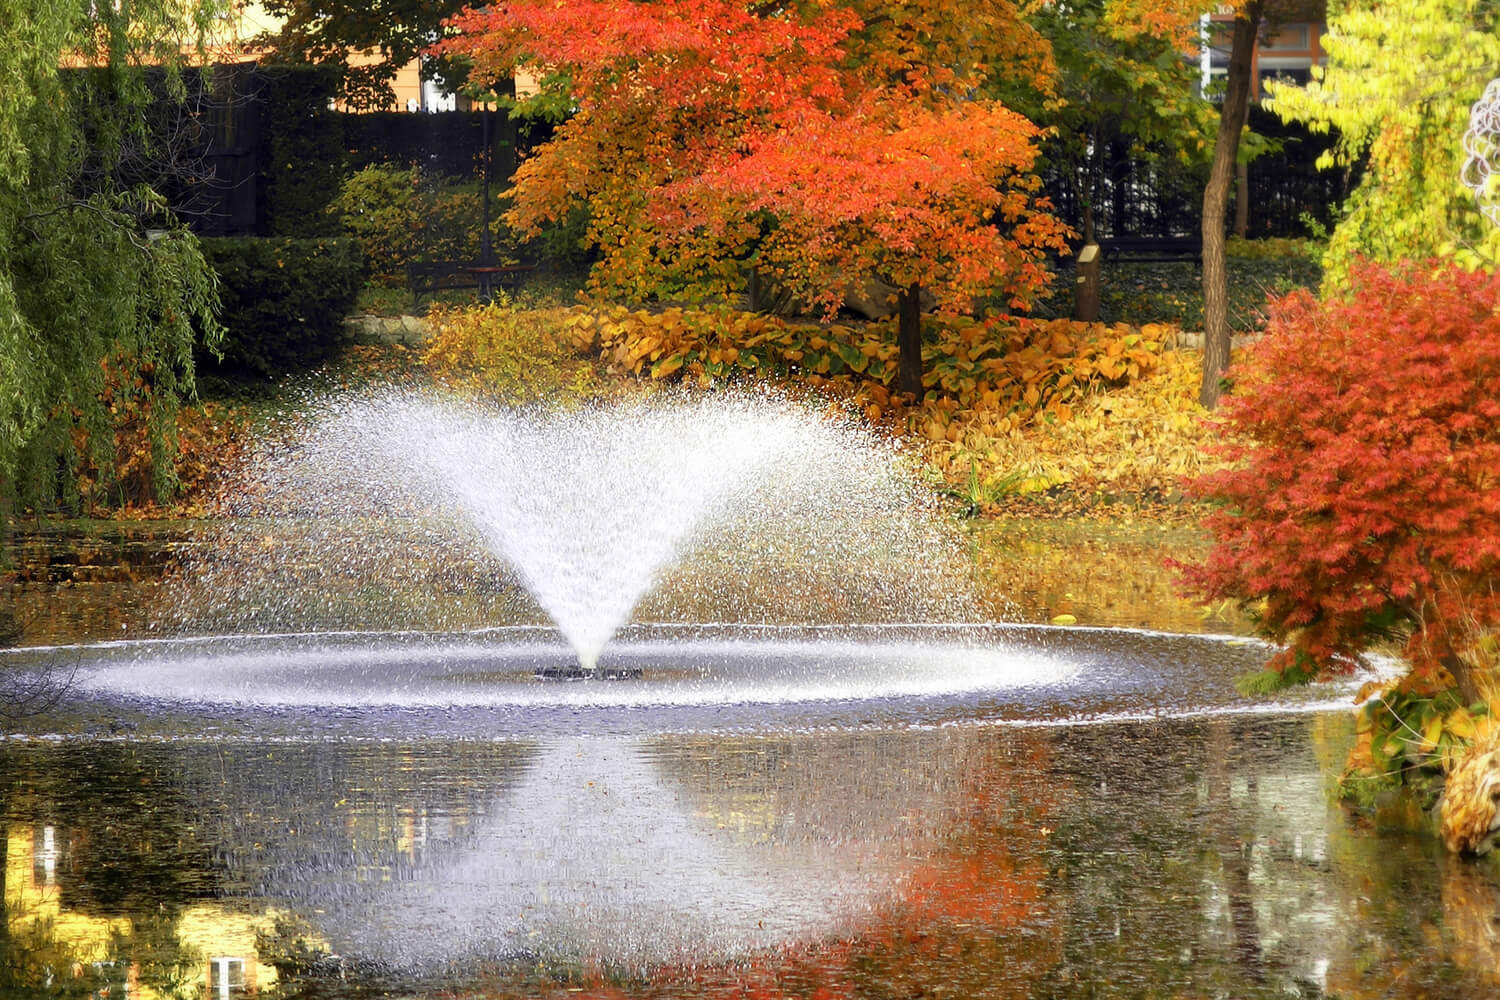 An Otterbine aerating fountain makes the park's autumn colors stand out